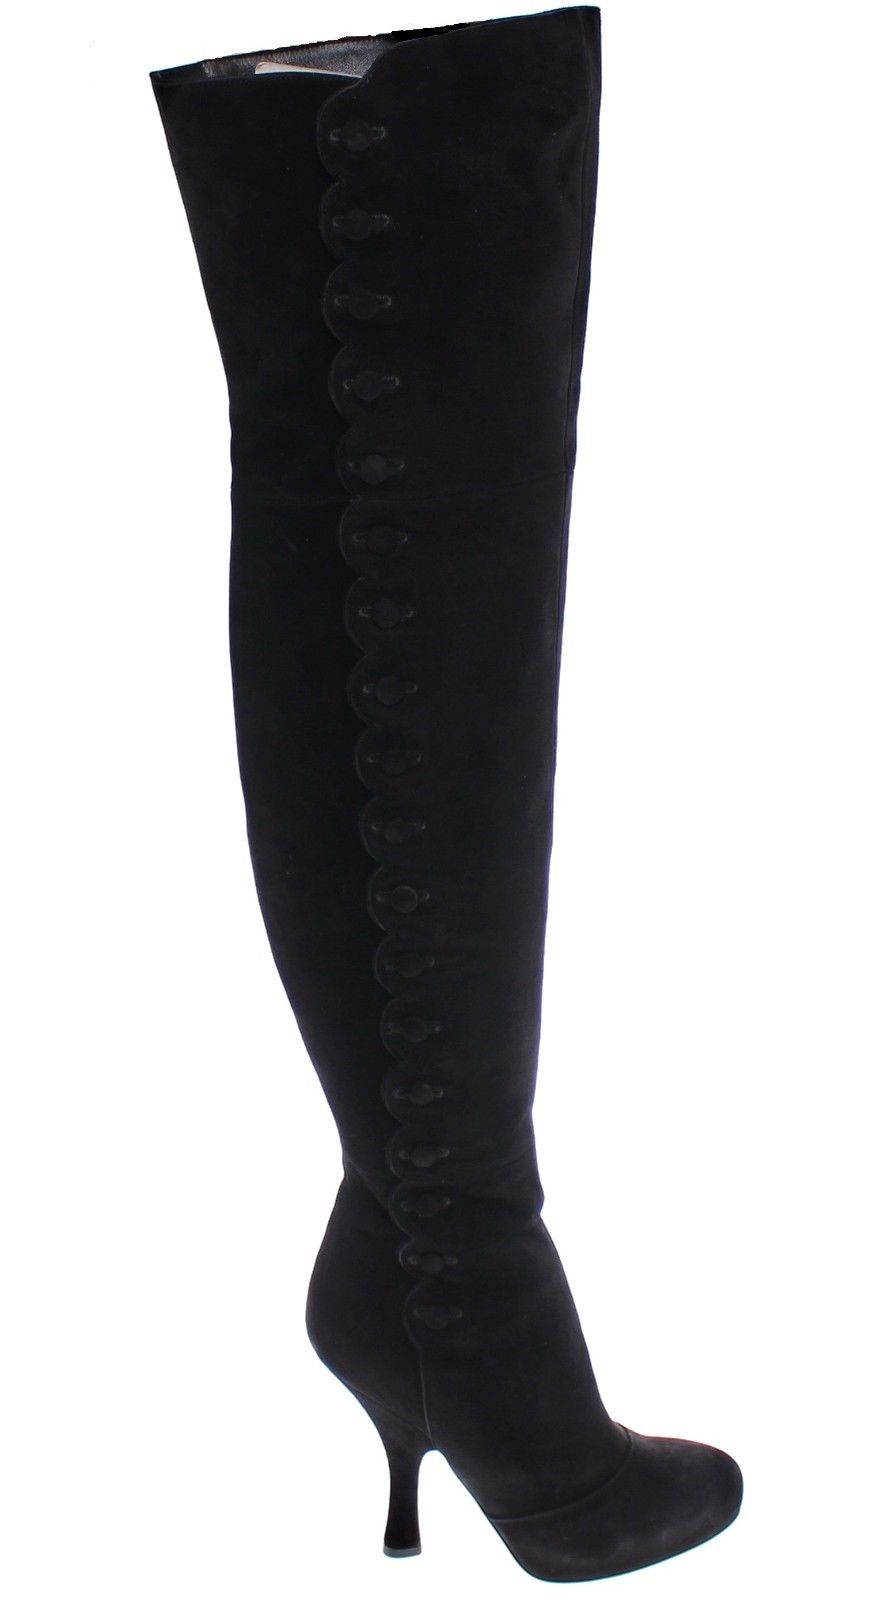 Dolce & Gabbana - Black Suede Leather Over Knee Boots